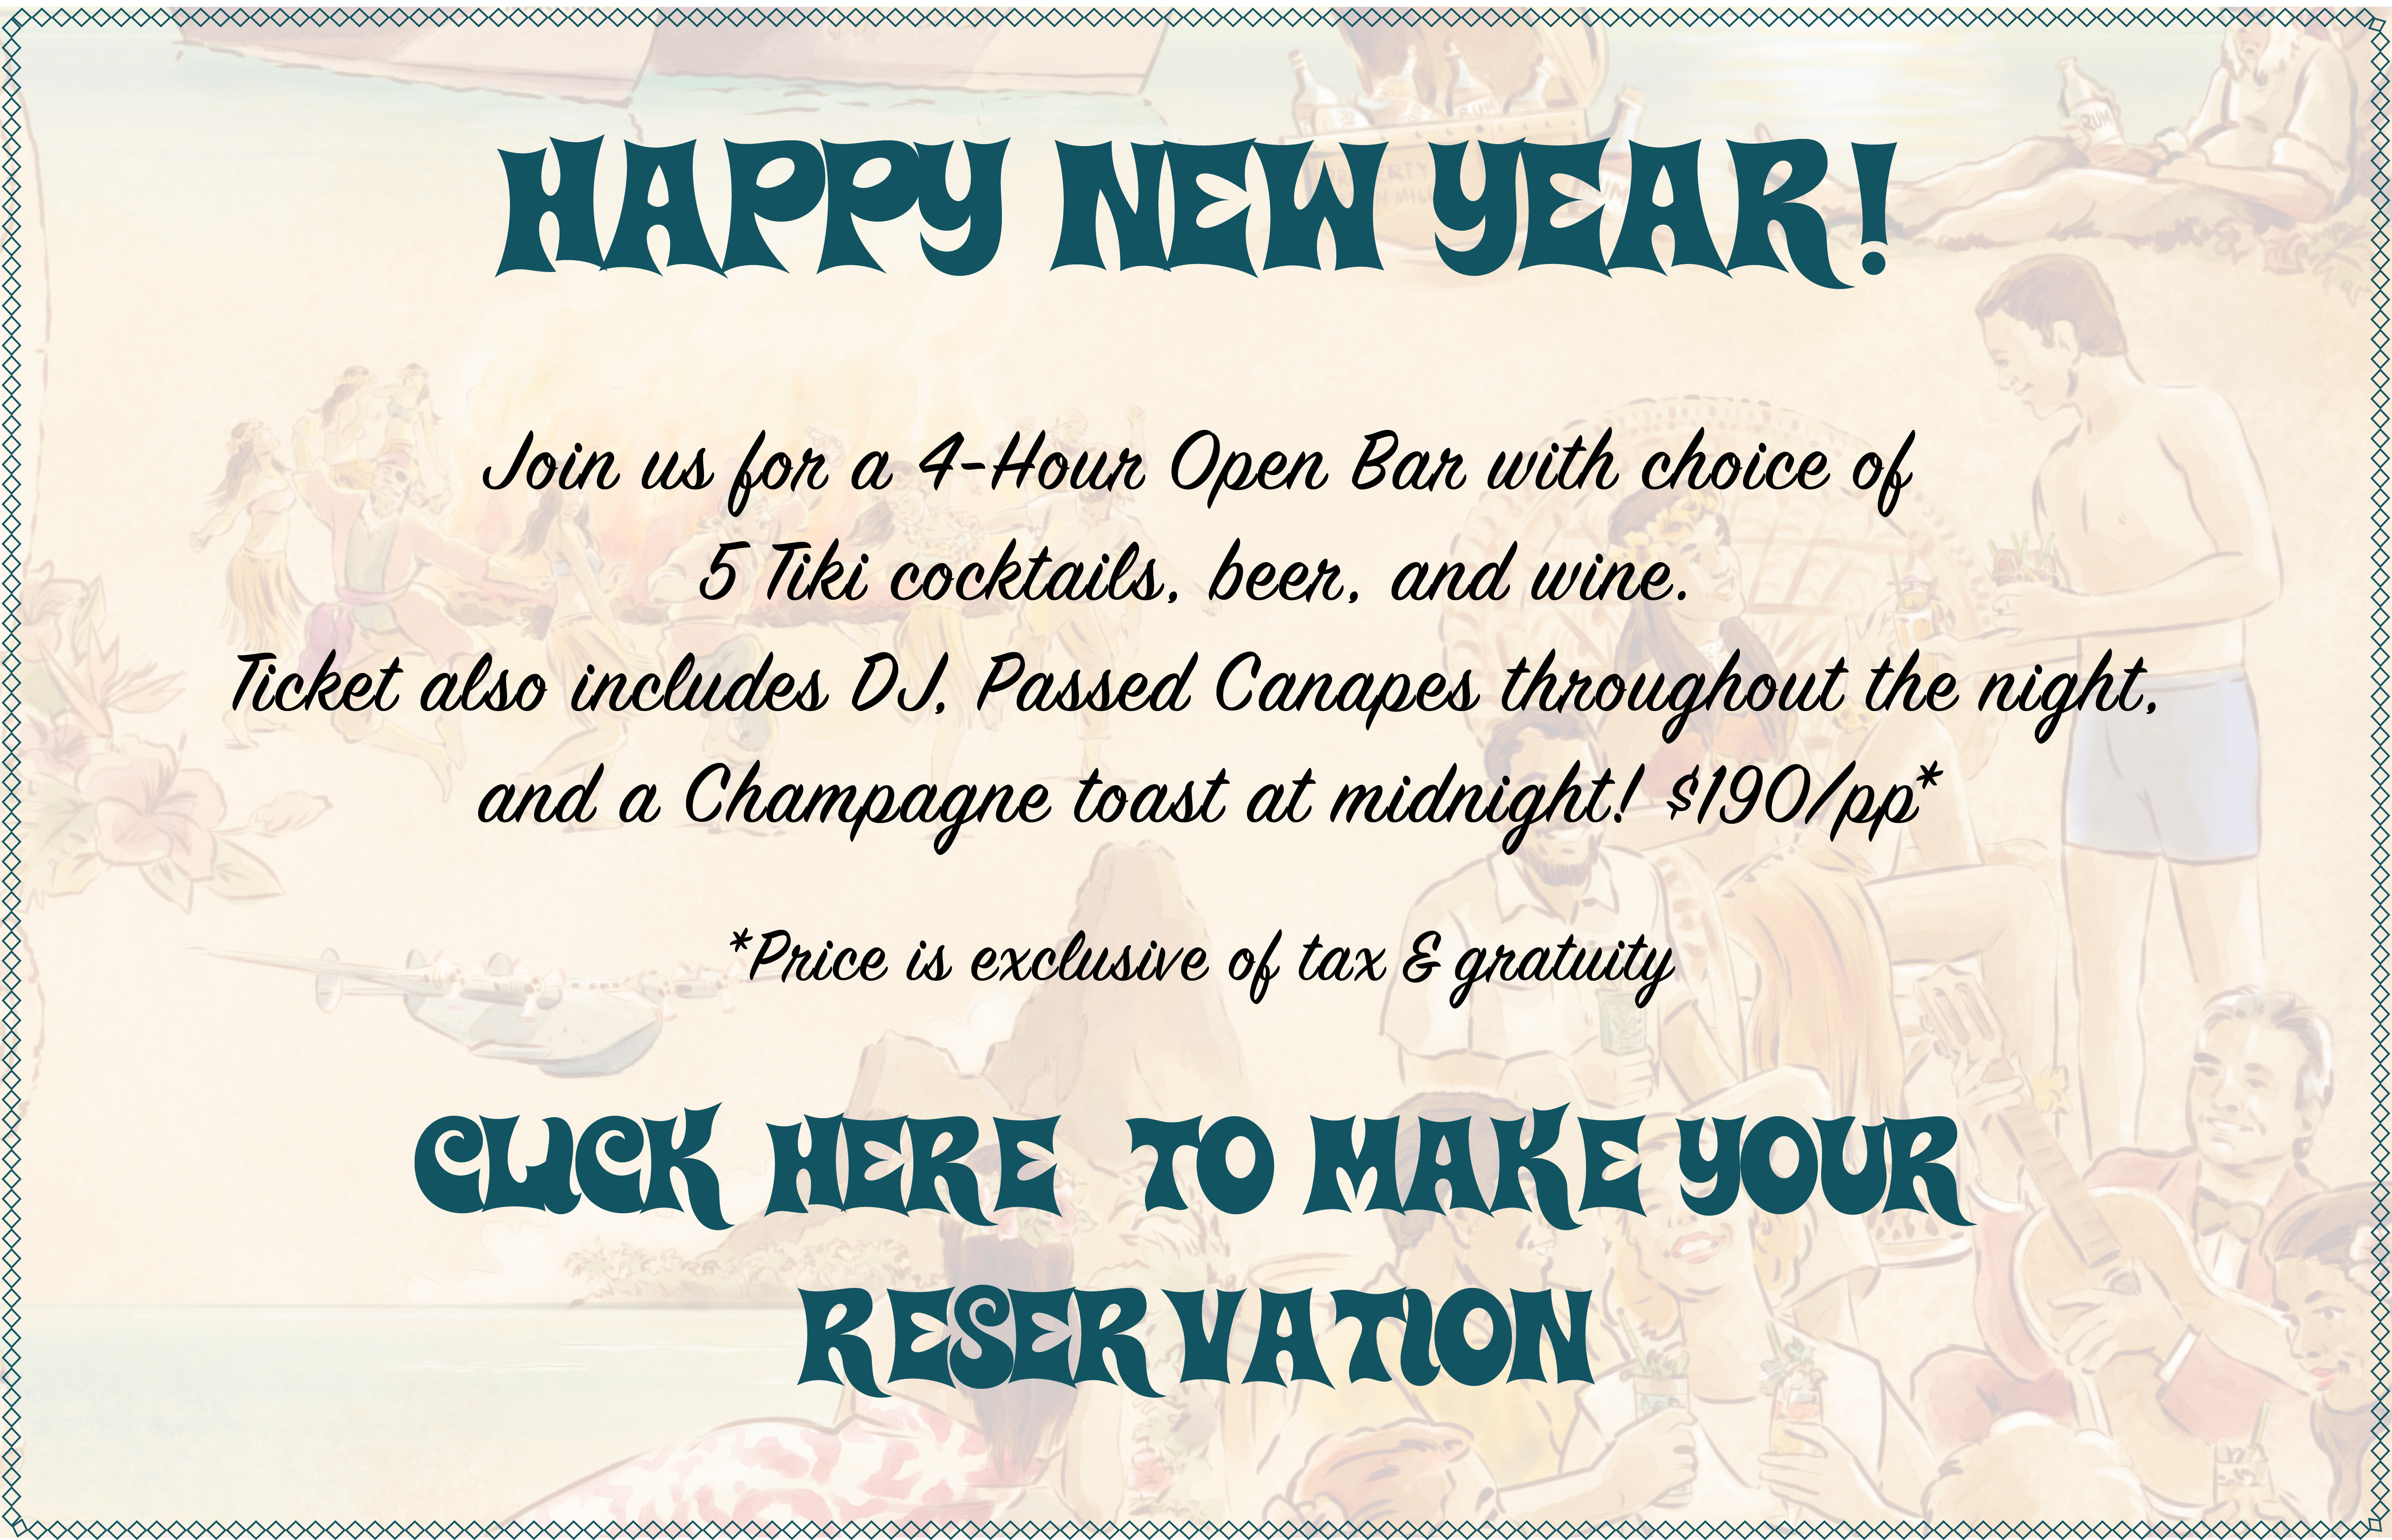 Make your New Year's Eve reservation